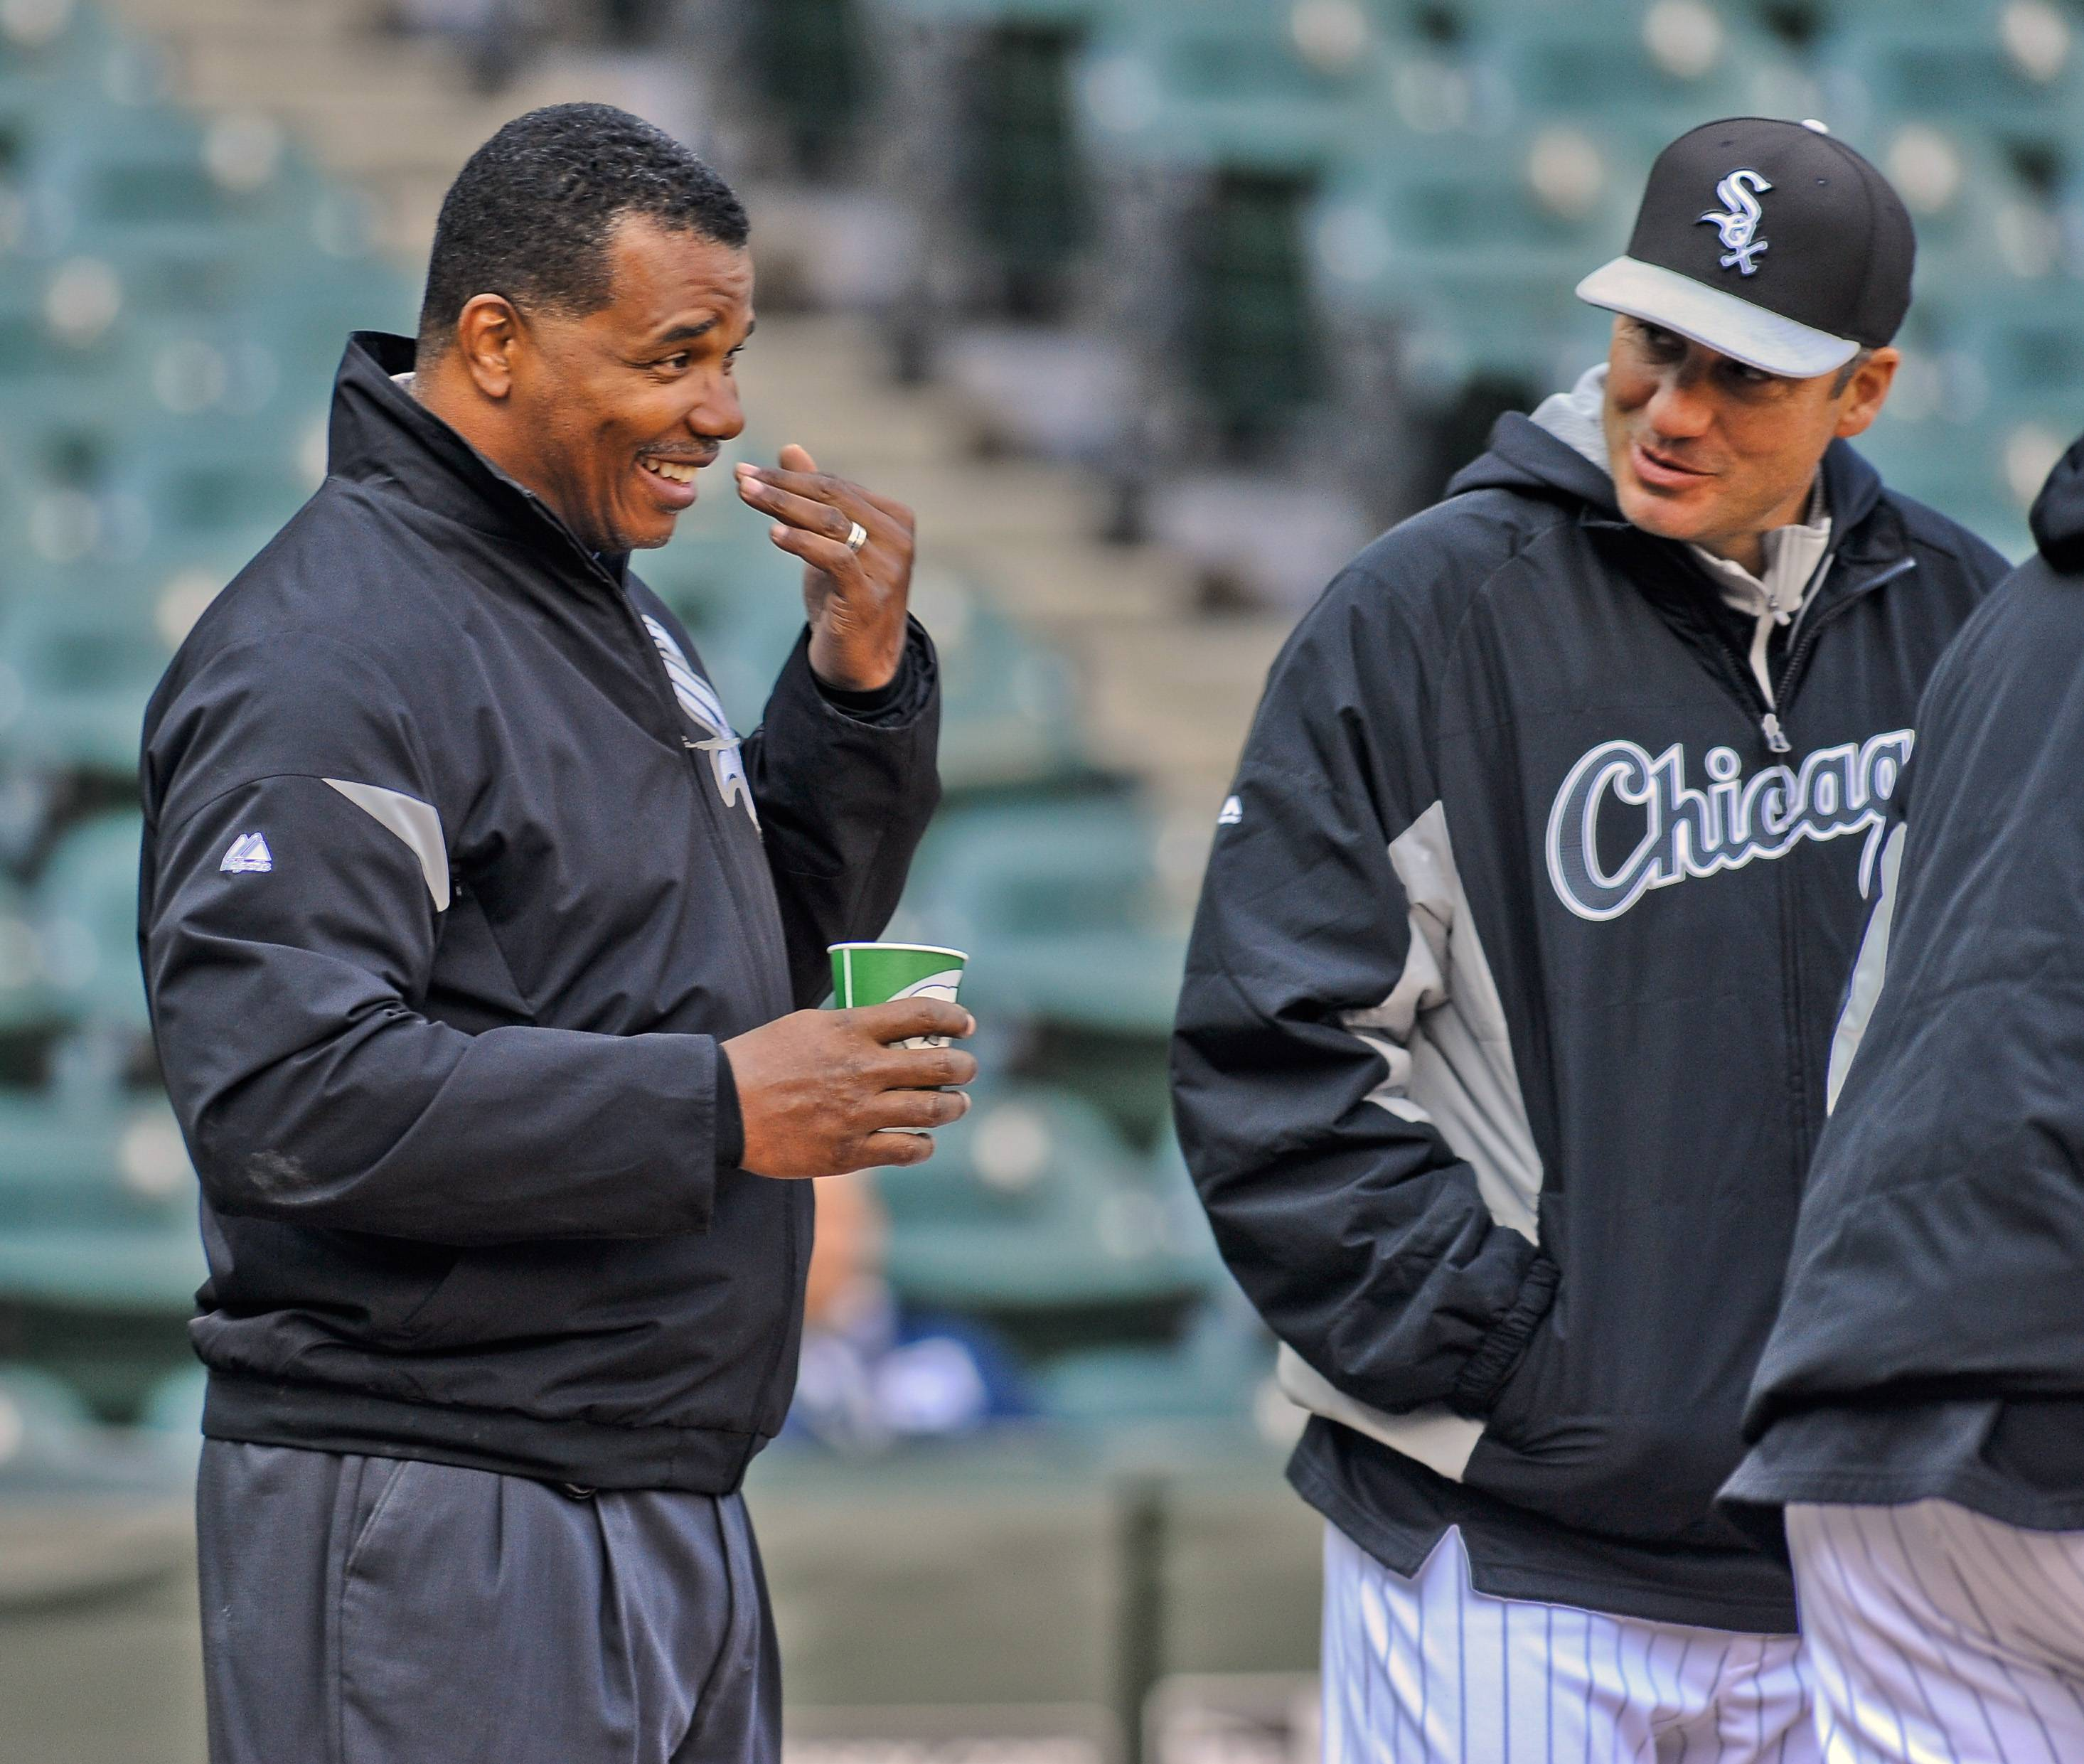 Williams tempers comments suspended Chicago White Sox ace